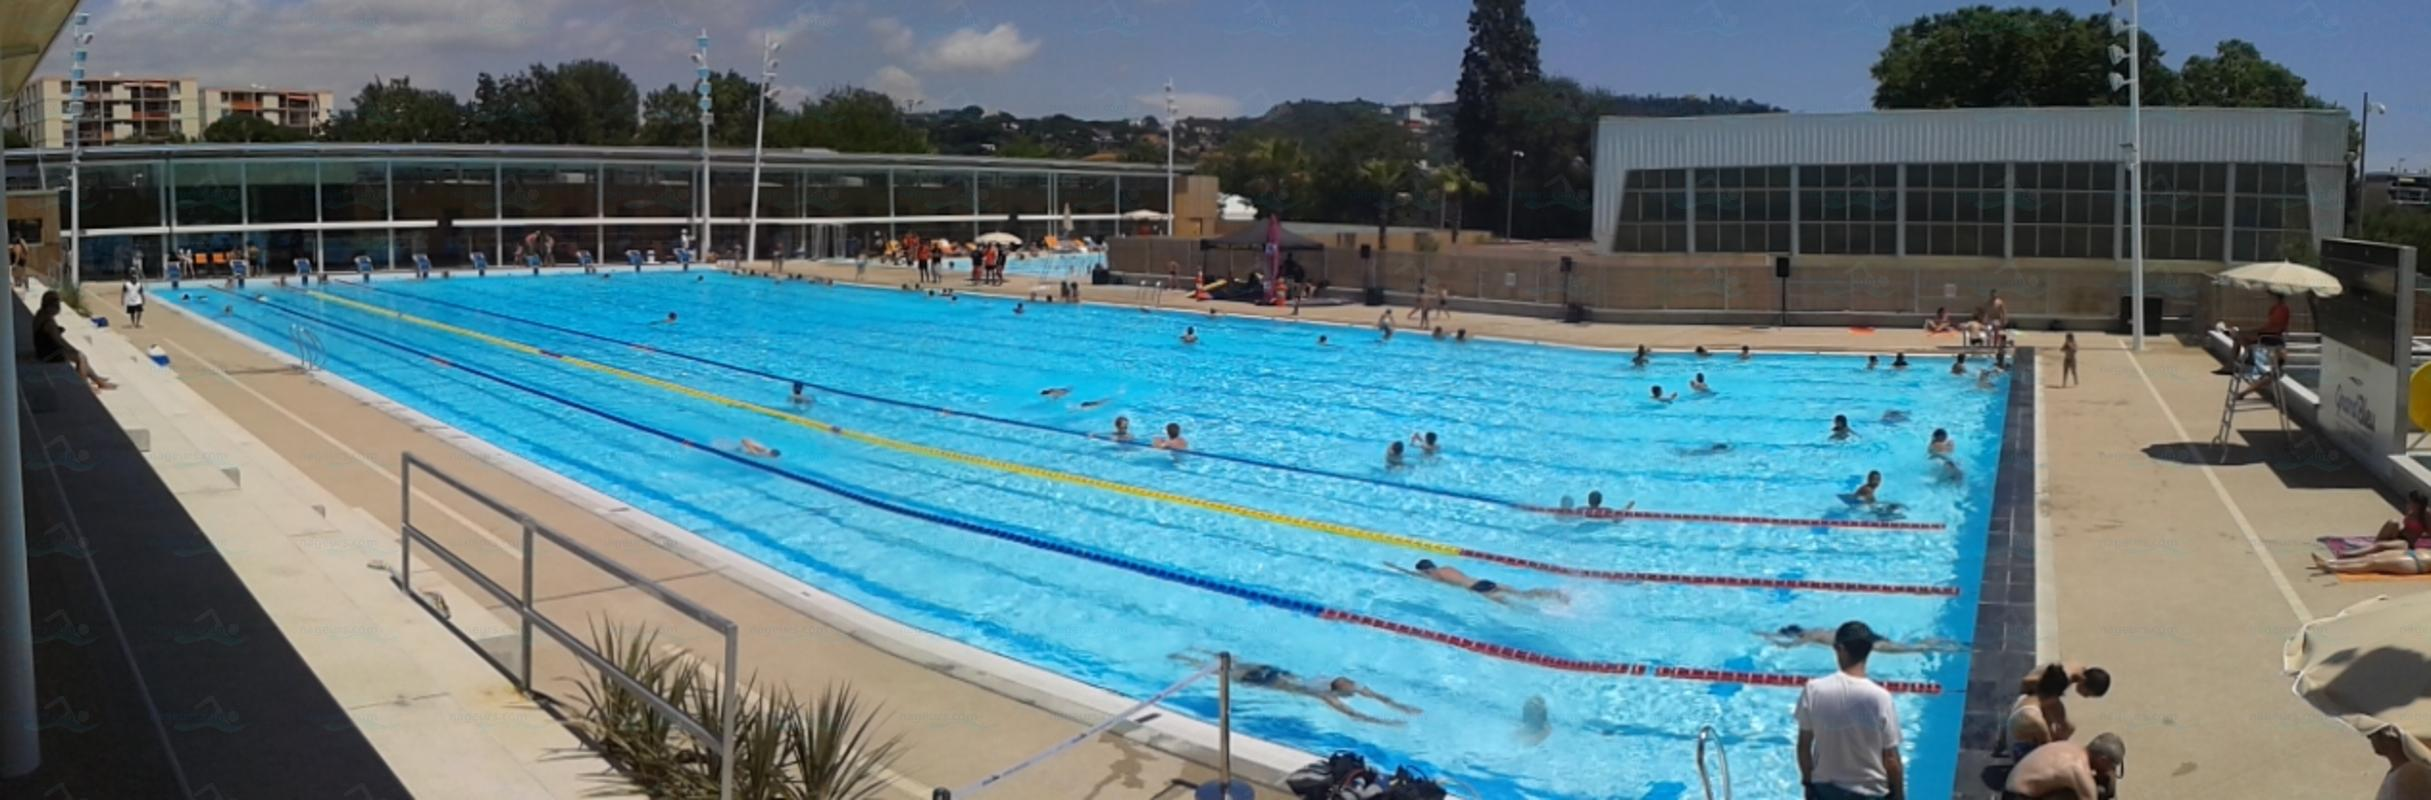 Photos centre aquatique grand bleu for Cannes piscine municipale